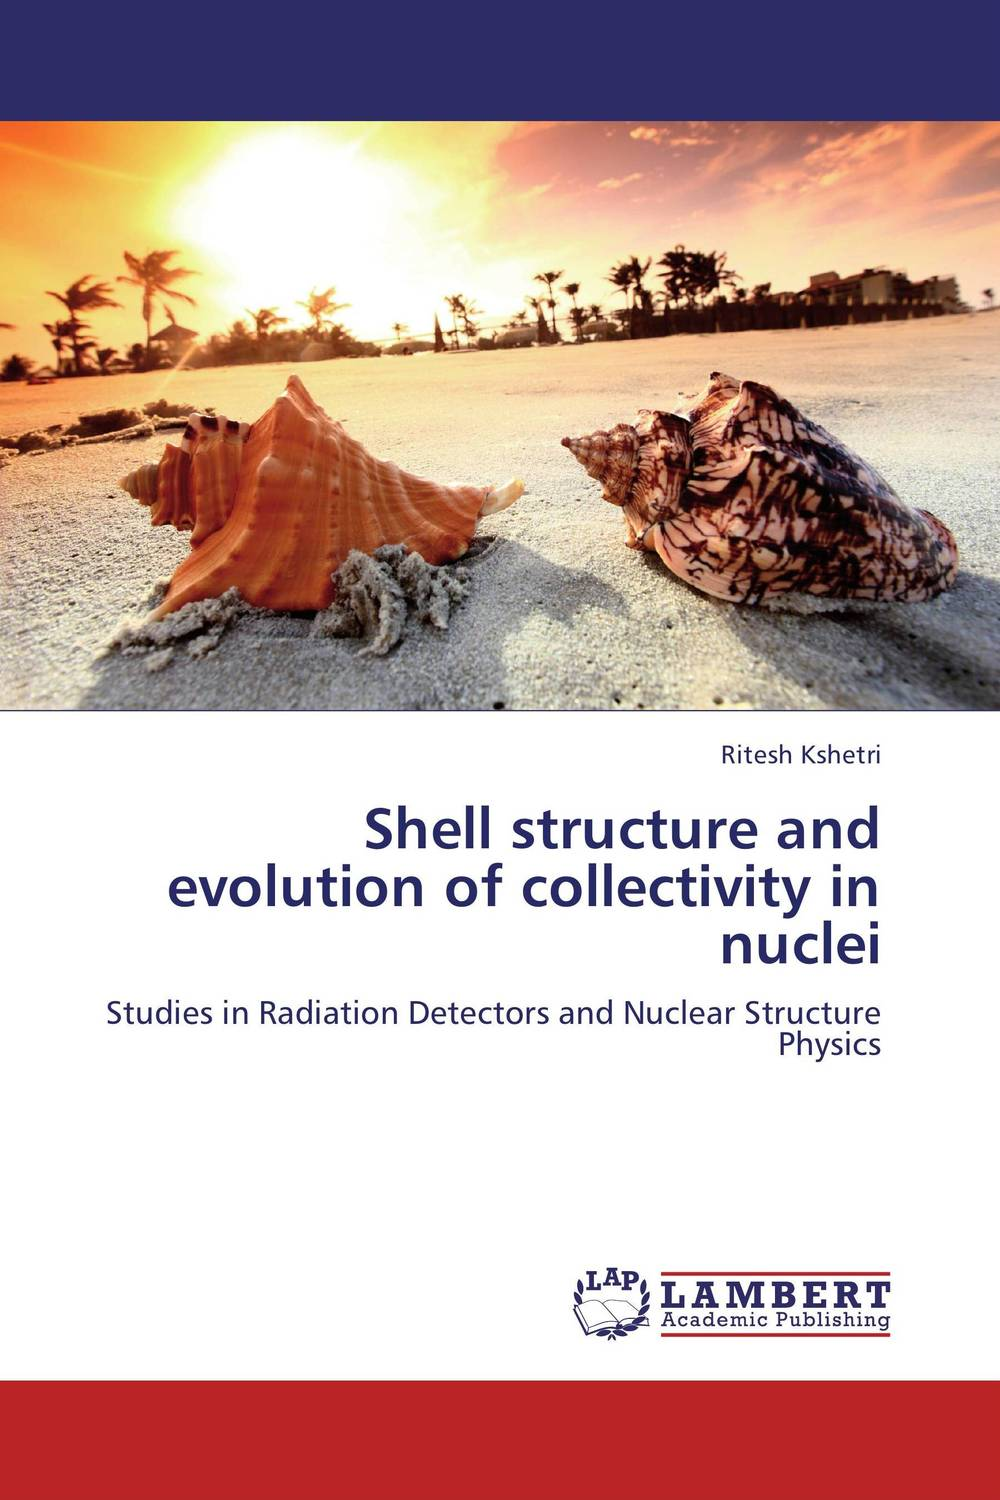 Shell structure and evolution of collectivity in nuclei evolution of crude oil price term structure